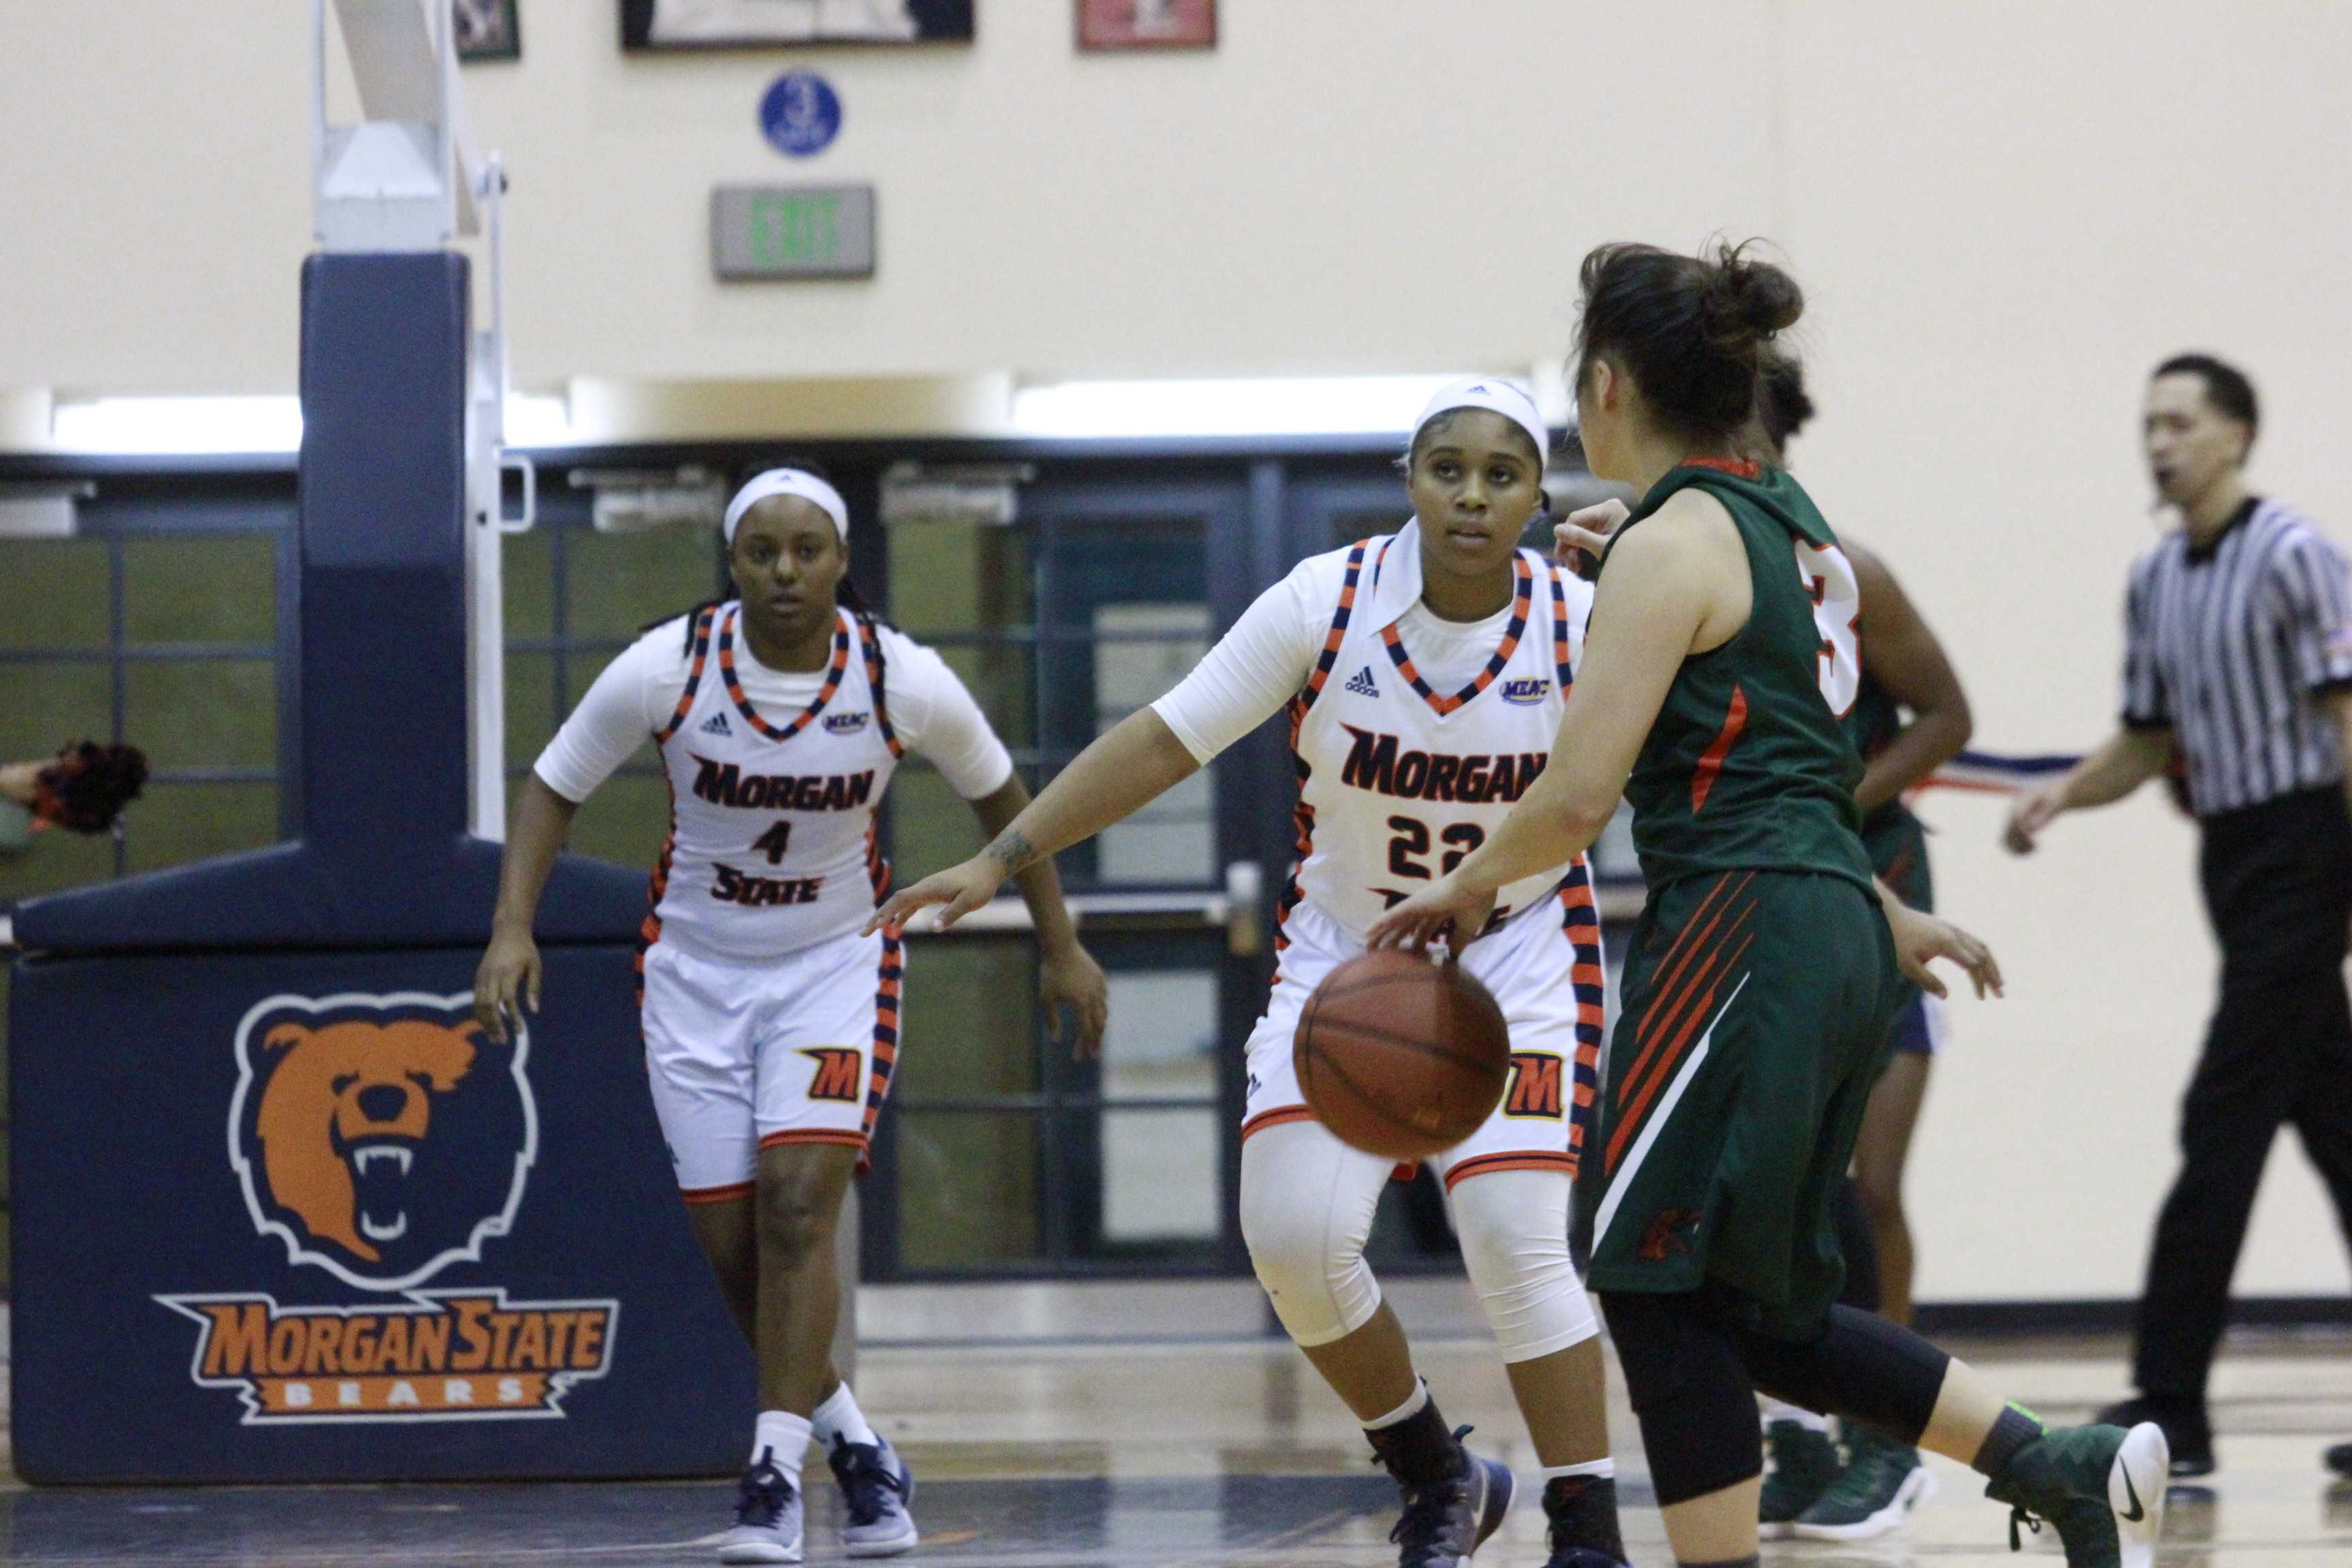 Freshman guards Kaylin Ellis (22) and Jihayah Chavis (4) defend the basket in the second half of a 61-26 loss to FAMU. Photo by Wyman Jones